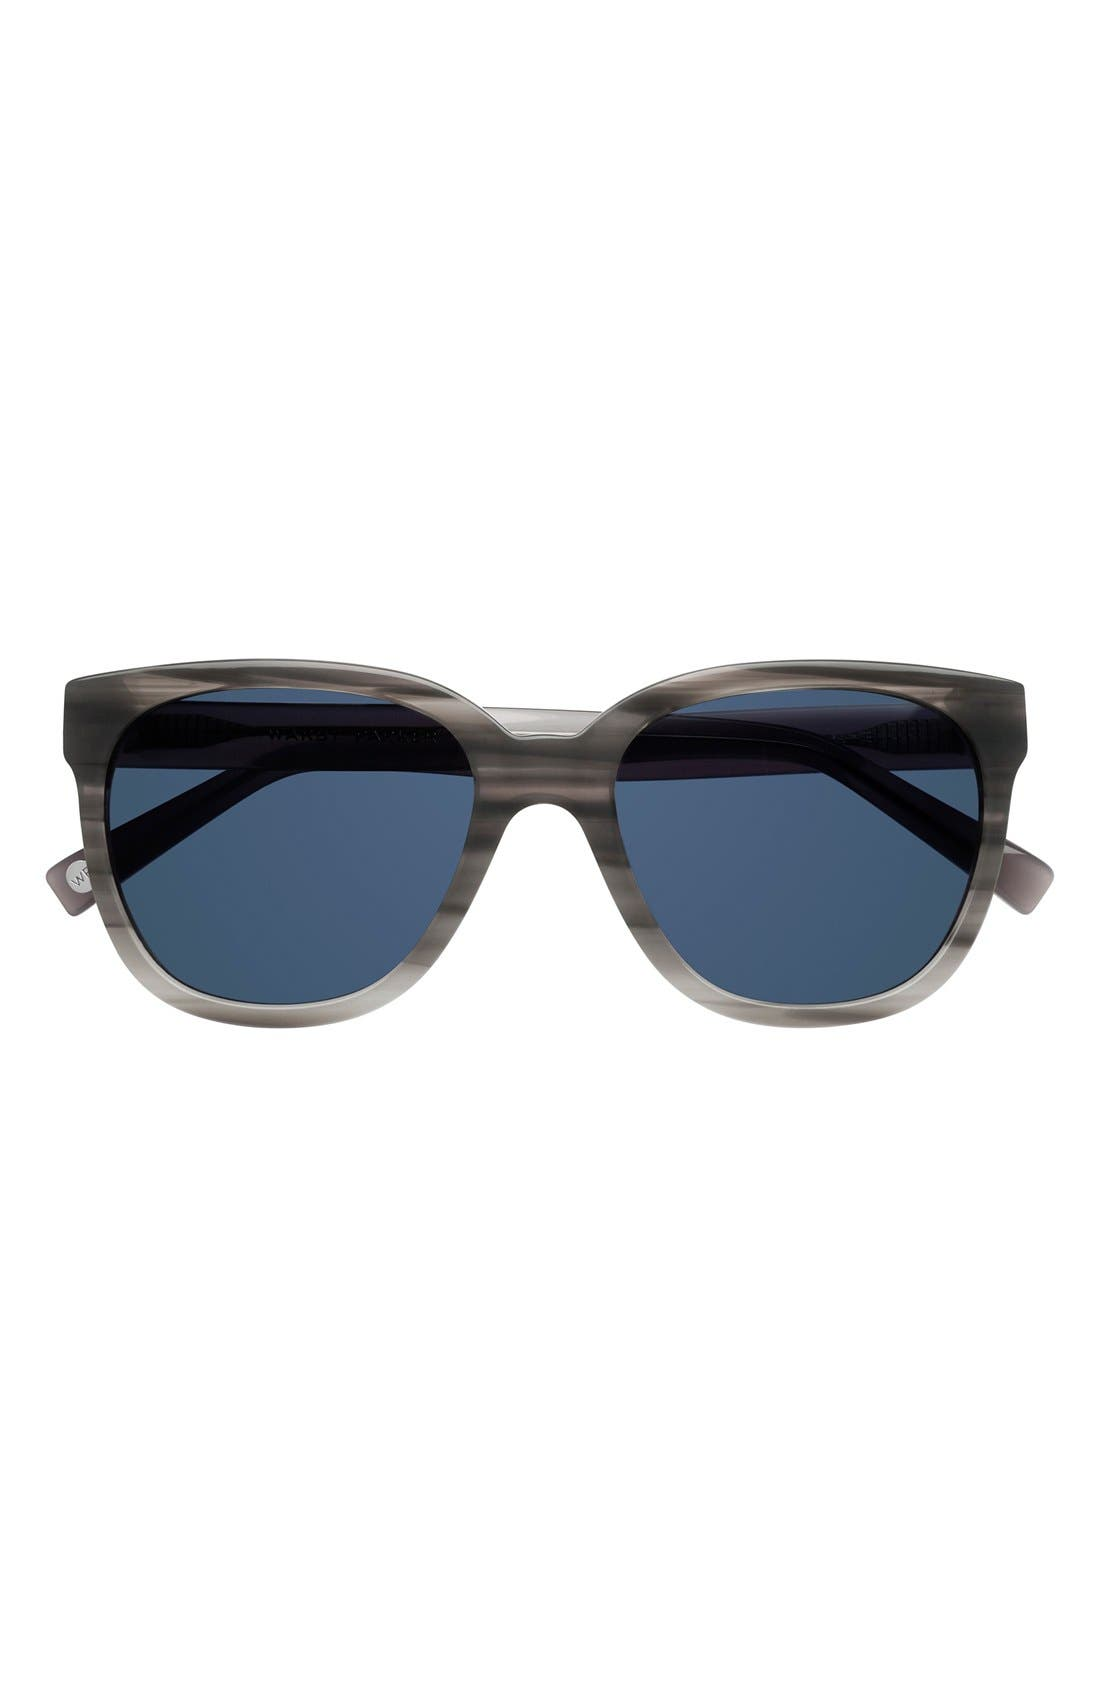 WARBY PARKER,                             'Reilly' 55mm Polarized Sunglasses,                             Alternate thumbnail 2, color,                             060